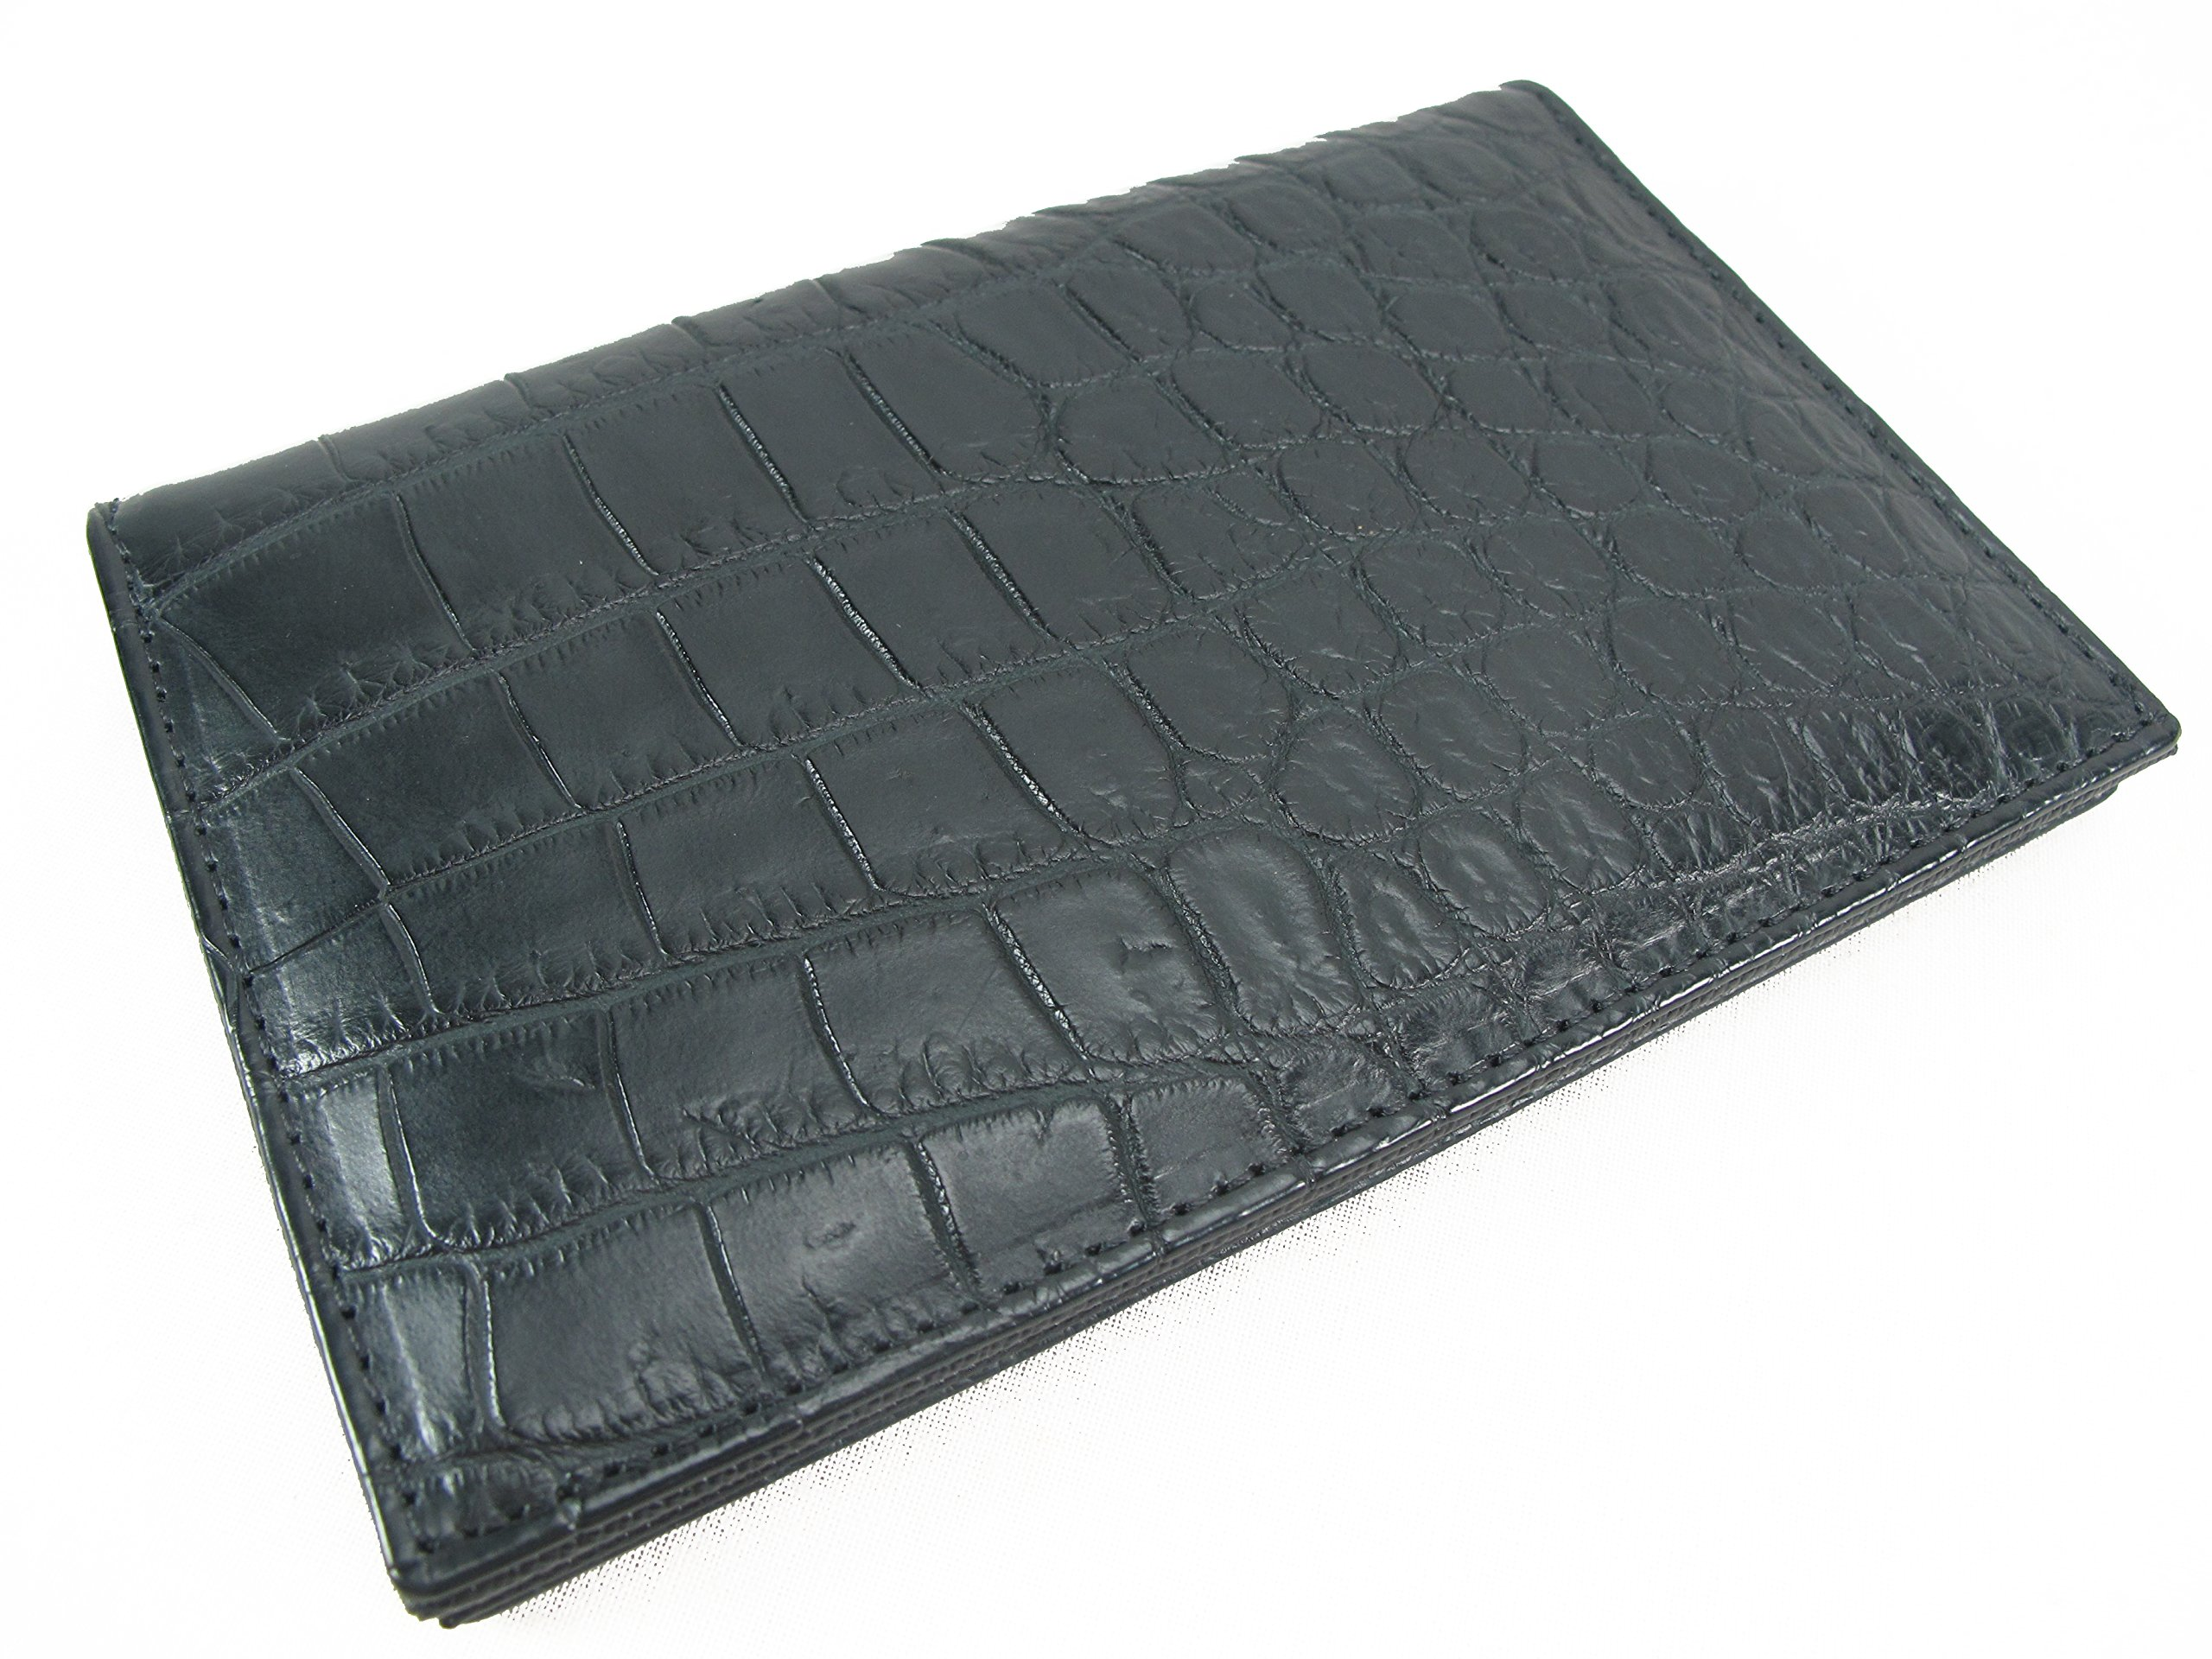 PELGIO Genuine Crocodile Alligator Belly Skin Leather Slim Passport Holder Wallet (Black)